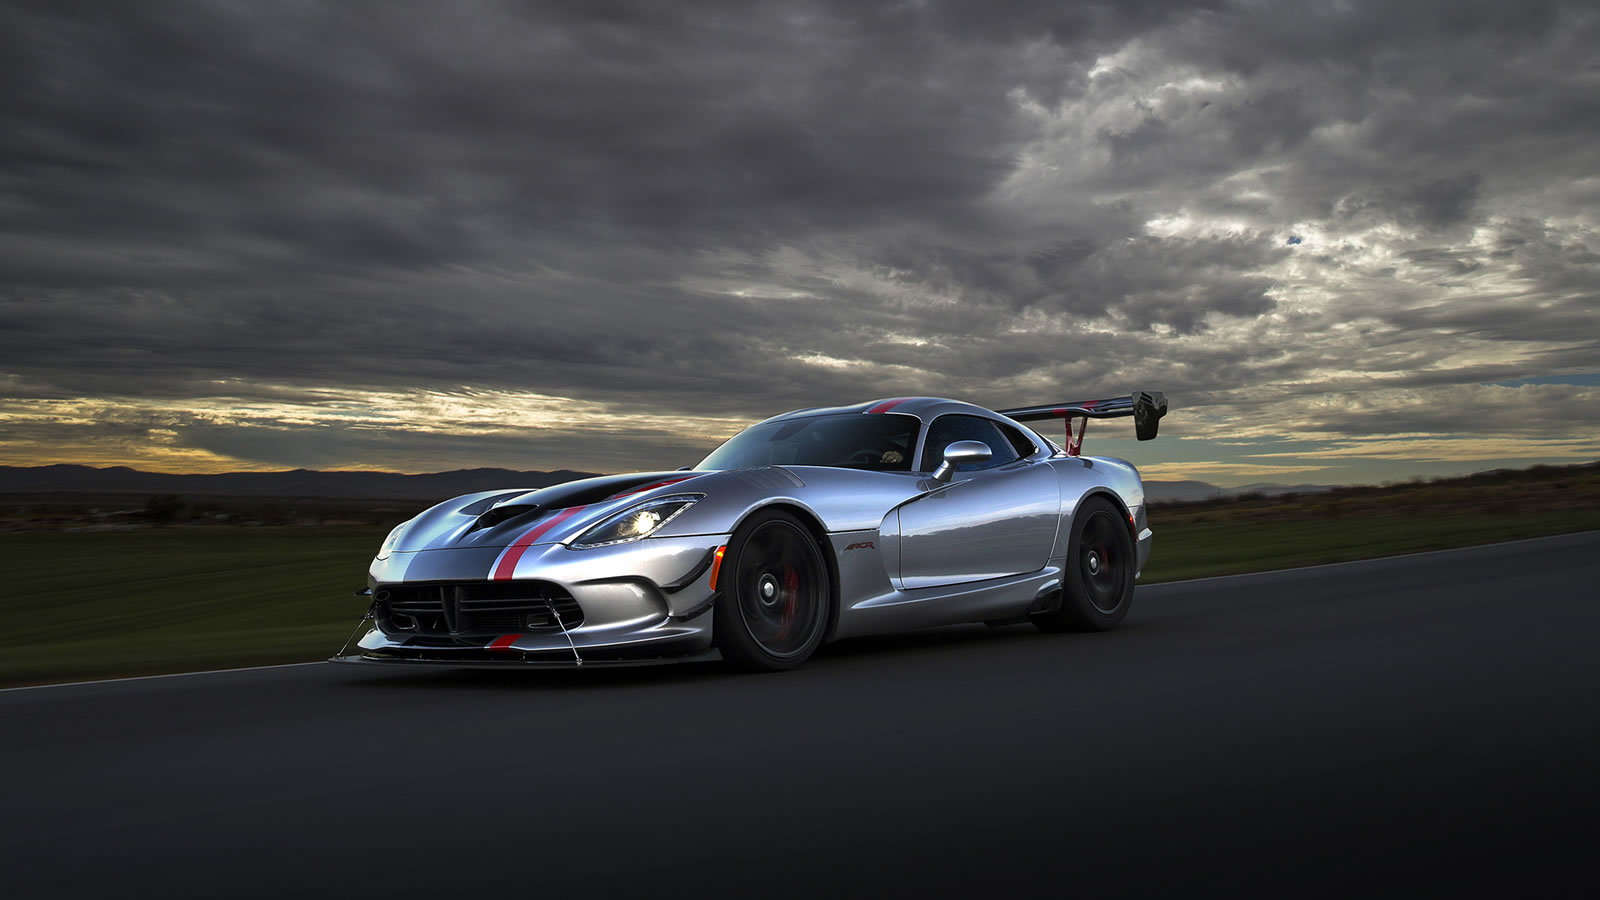 5 Ways Driving a Viper is Different From Other Cars